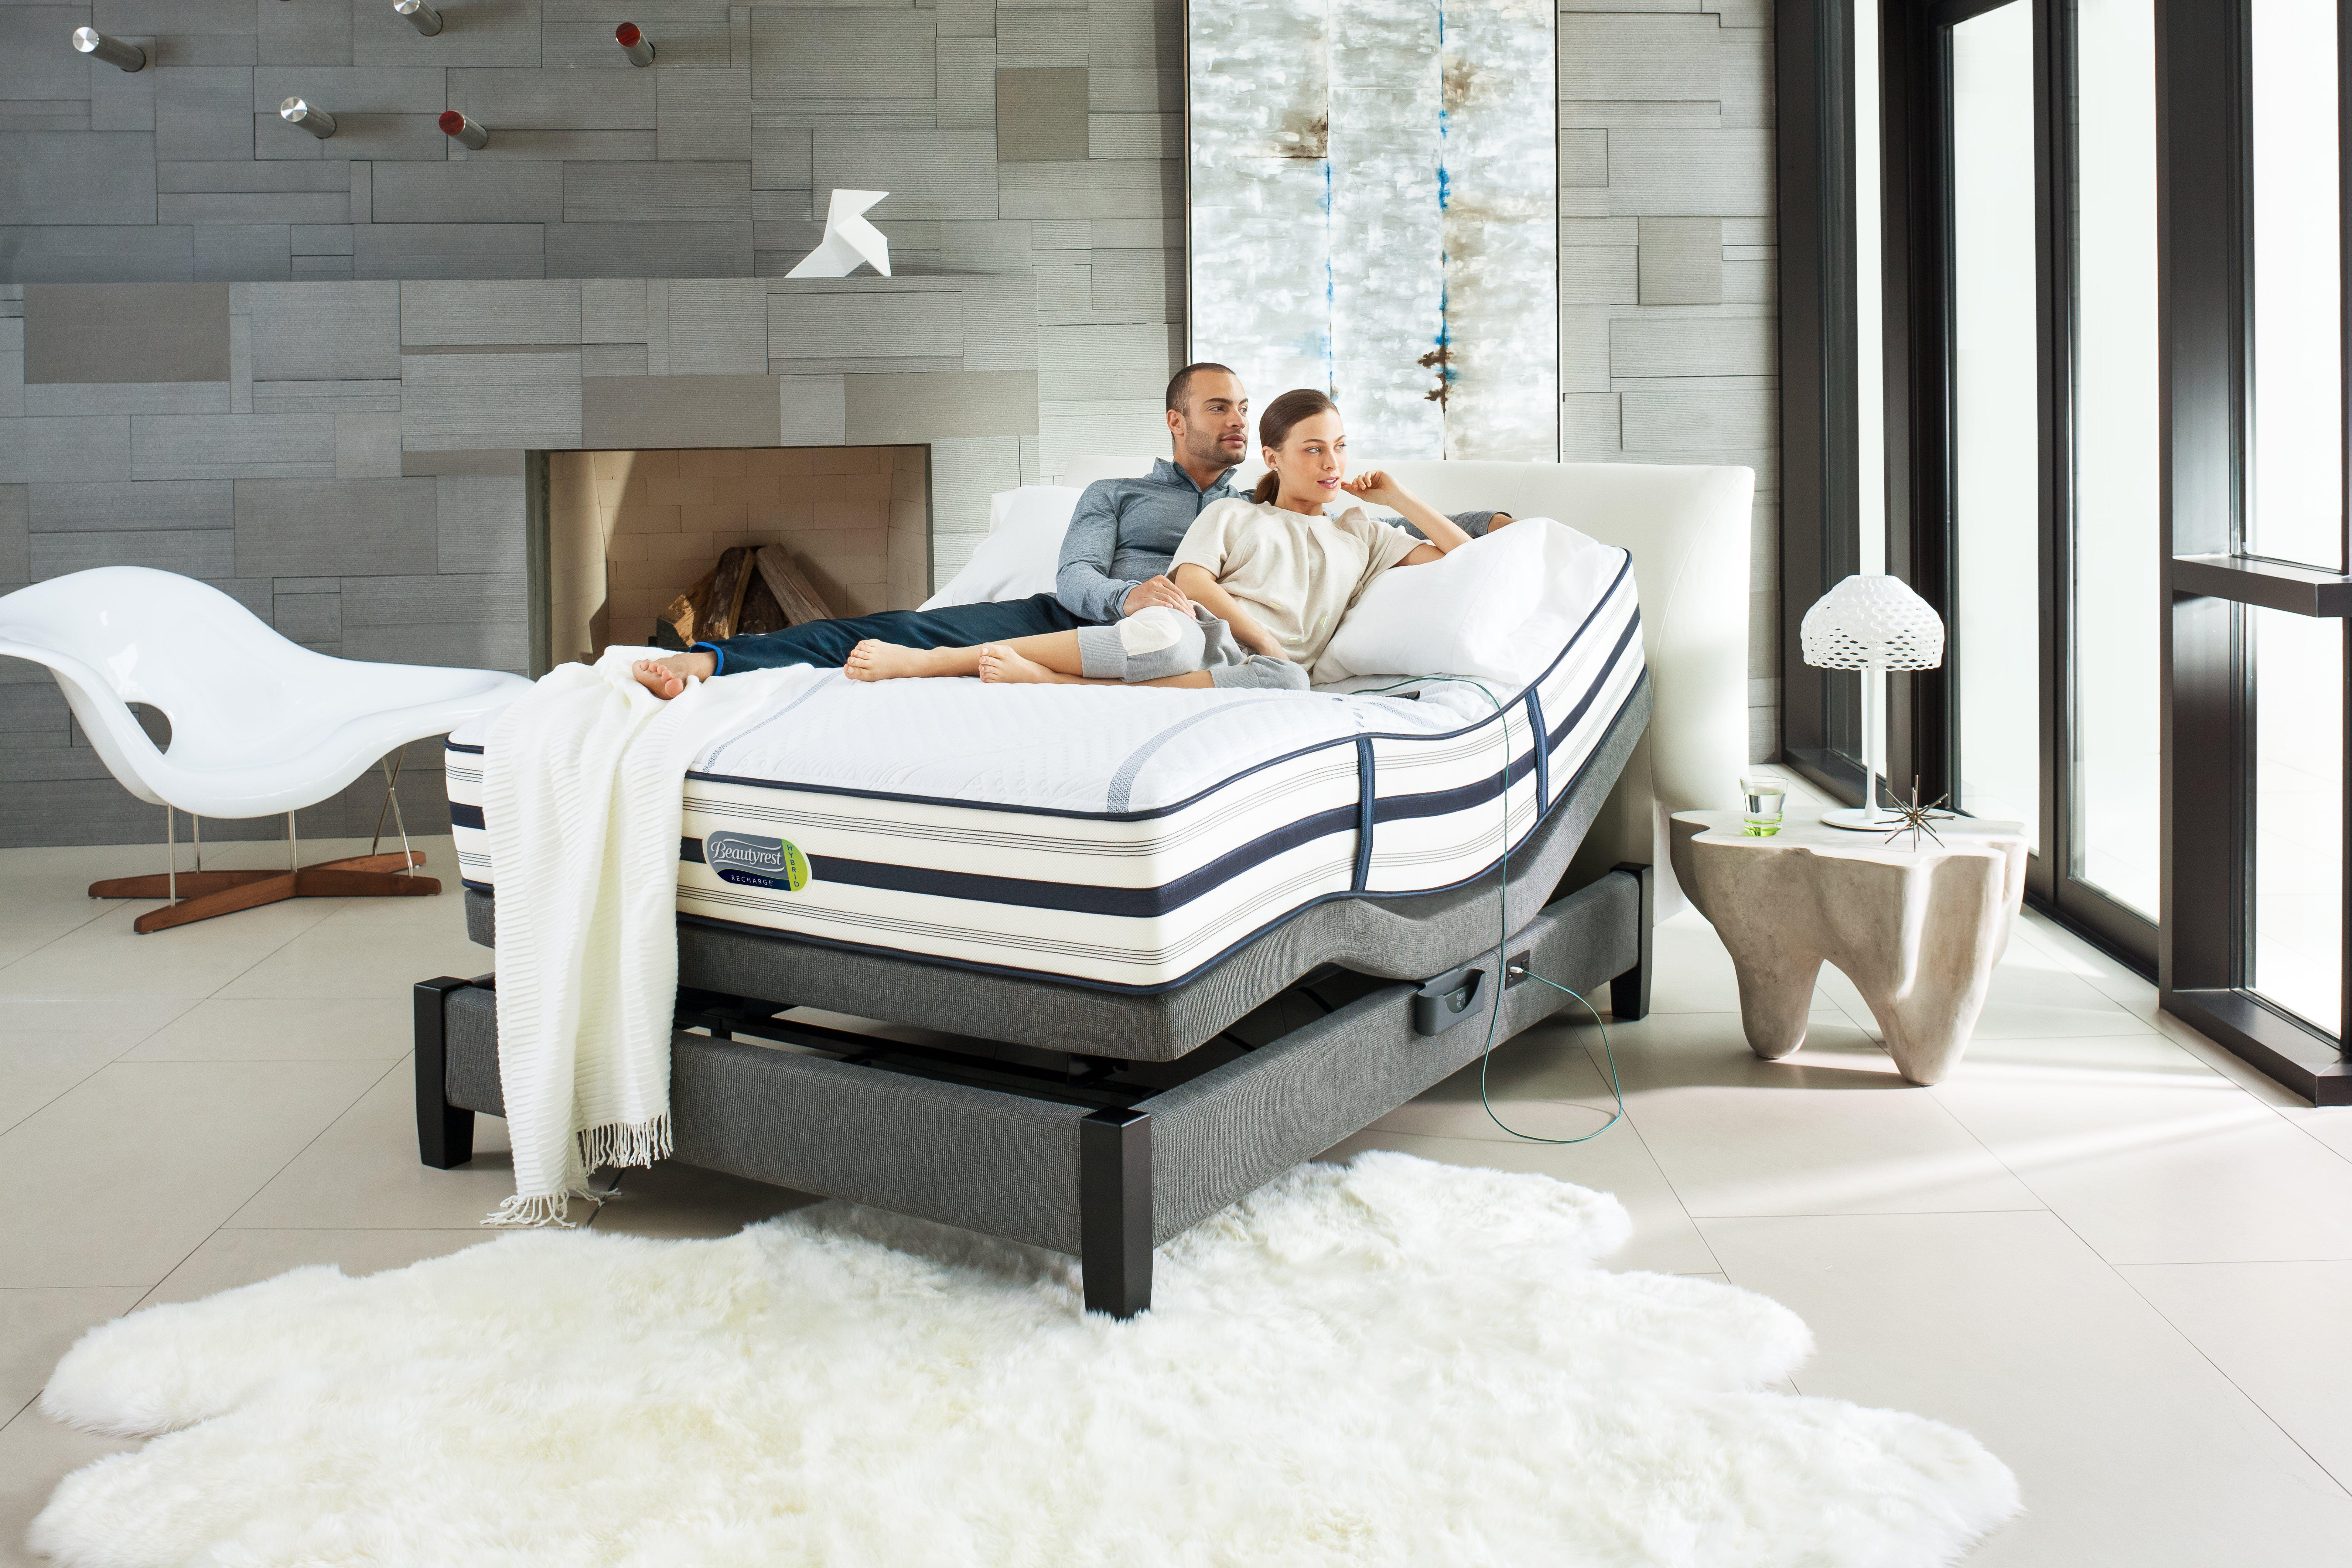 Beautyrest adjustable